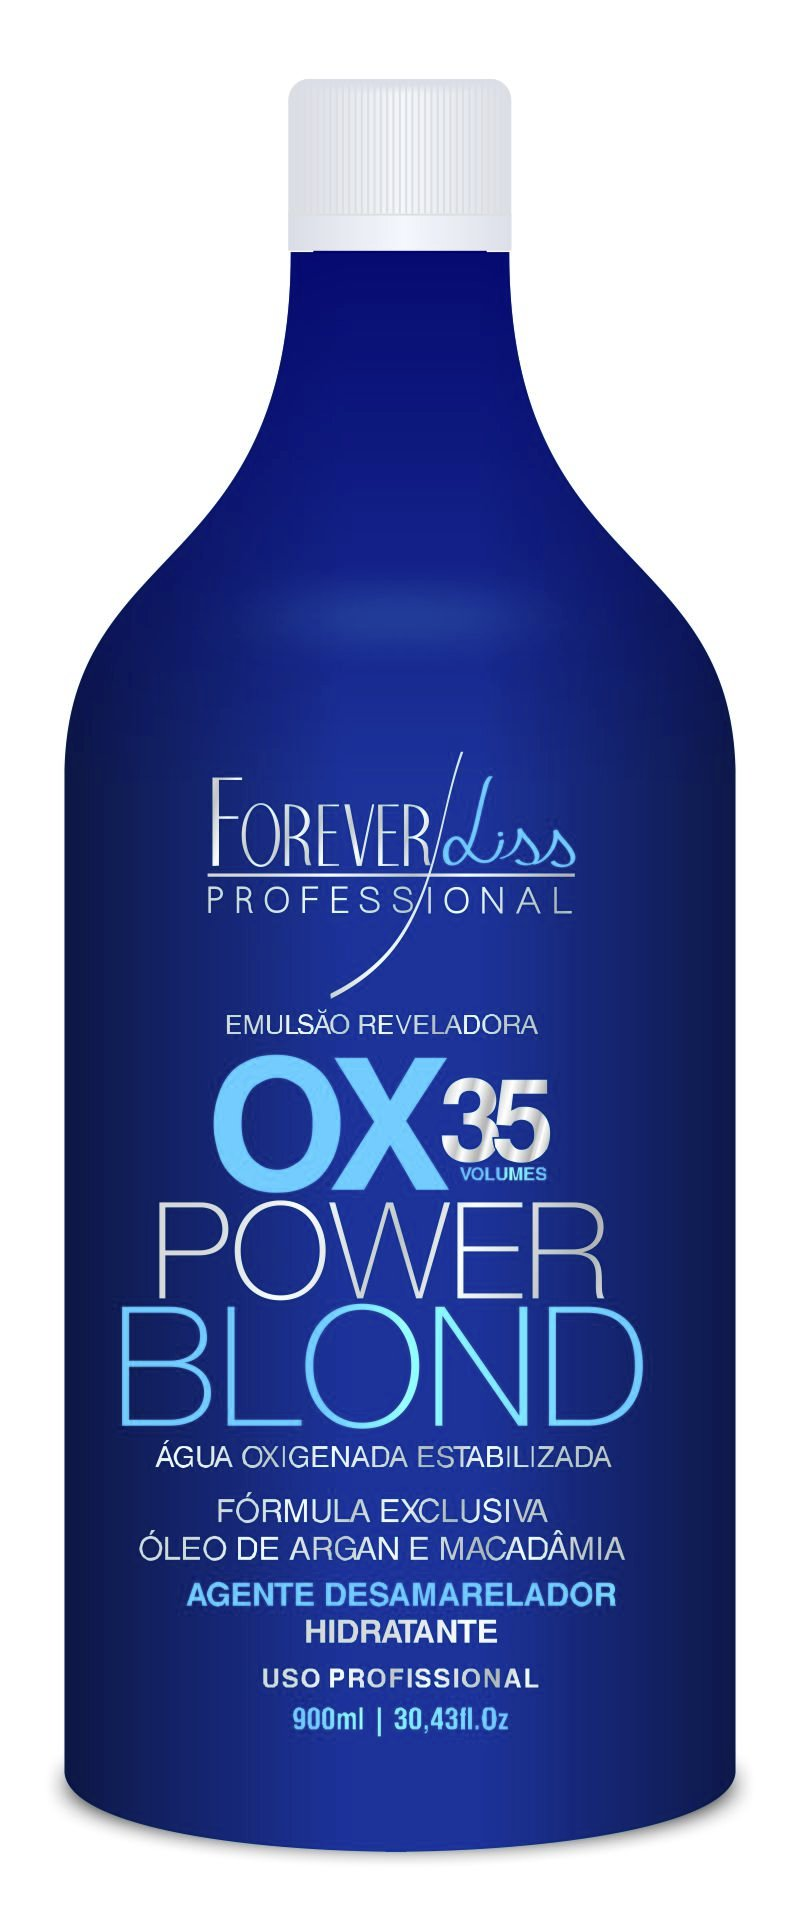 Power Blond Agua Oxigenada 35 Volumes 900ml Forever Liss